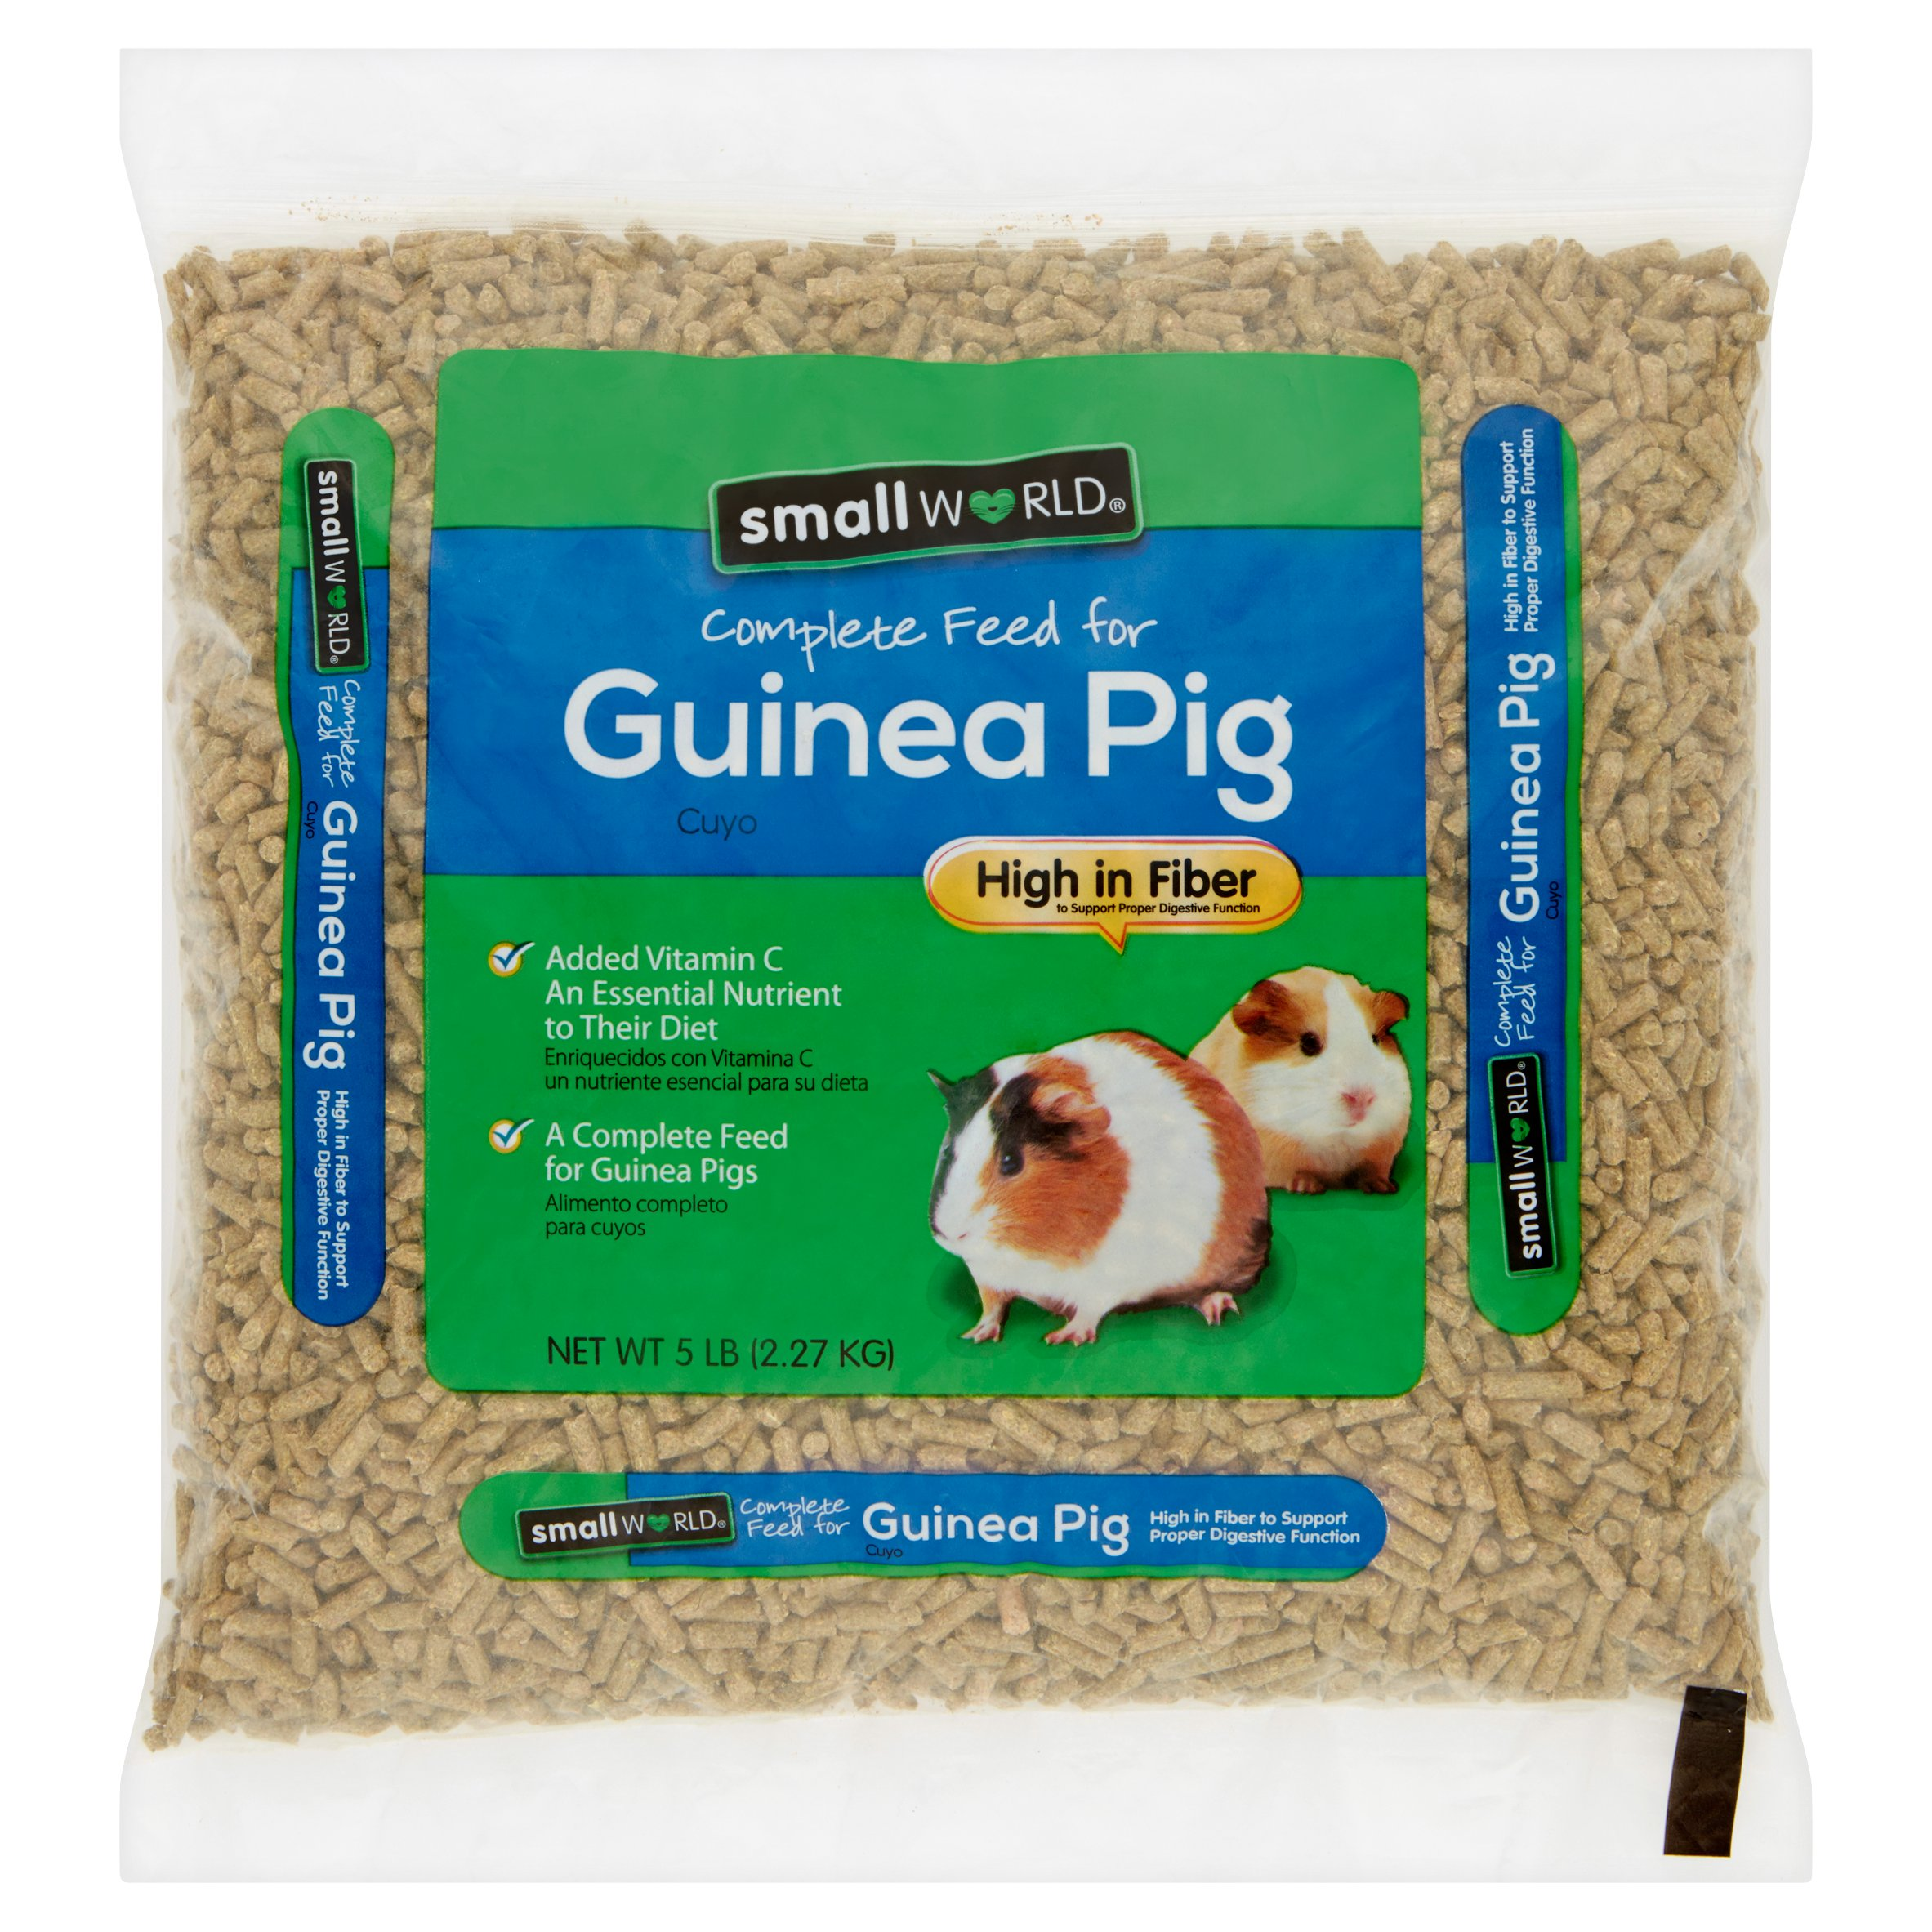 Small World plete Feed For Guinea Pigs 5 lbs Walmart